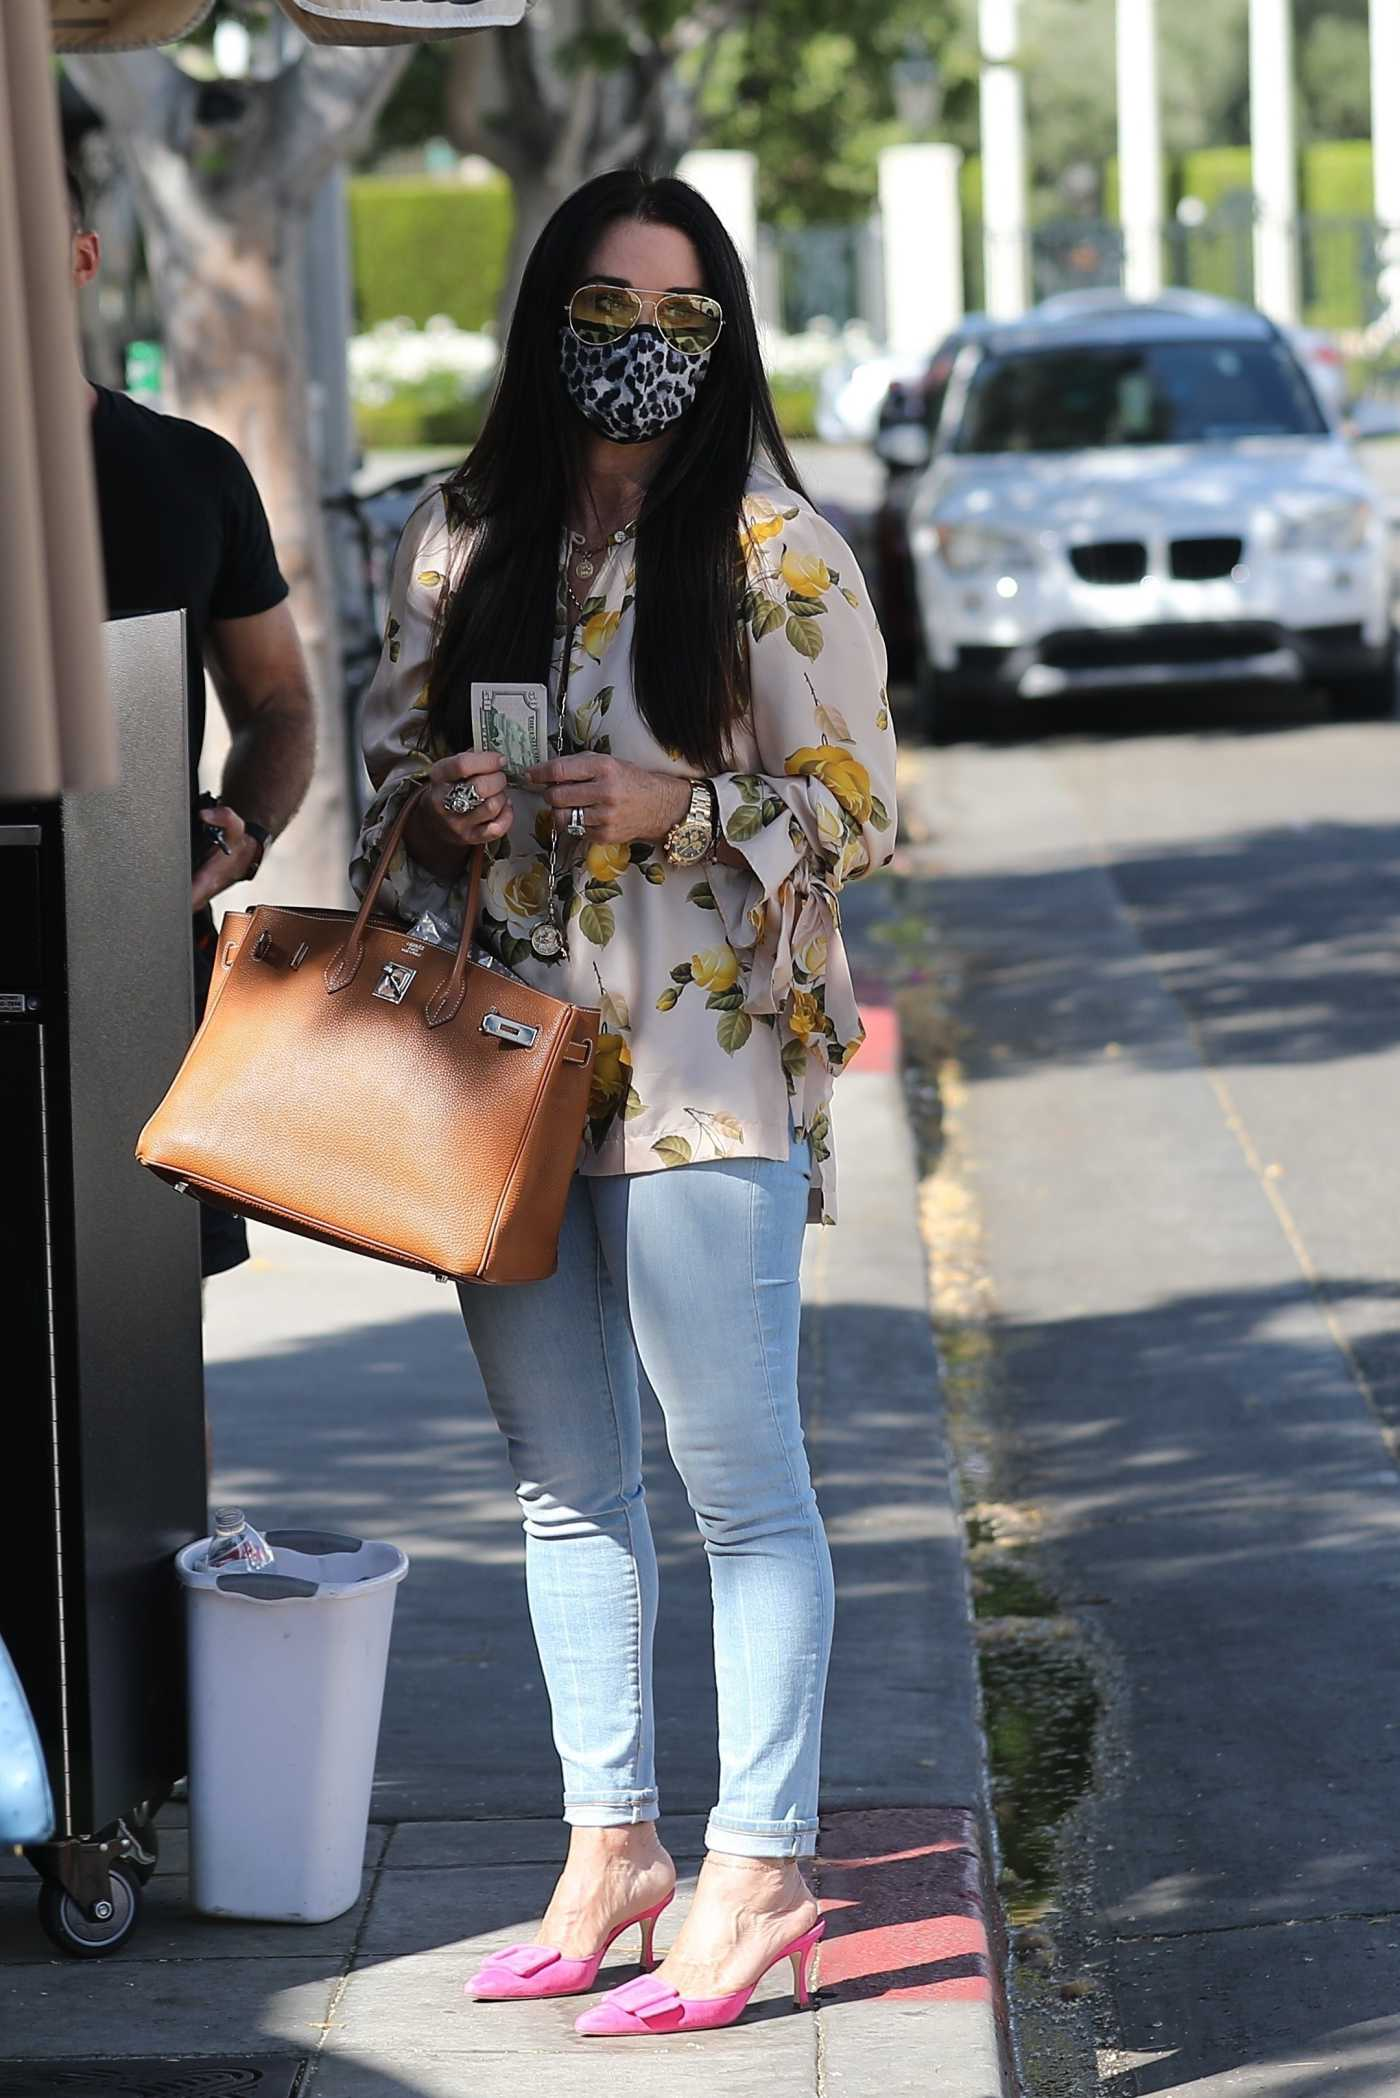 Kyle Richards in a Floral Print Blouse Leaves Lunch at Il Pastaio in Beverly Hills 06/11/2020